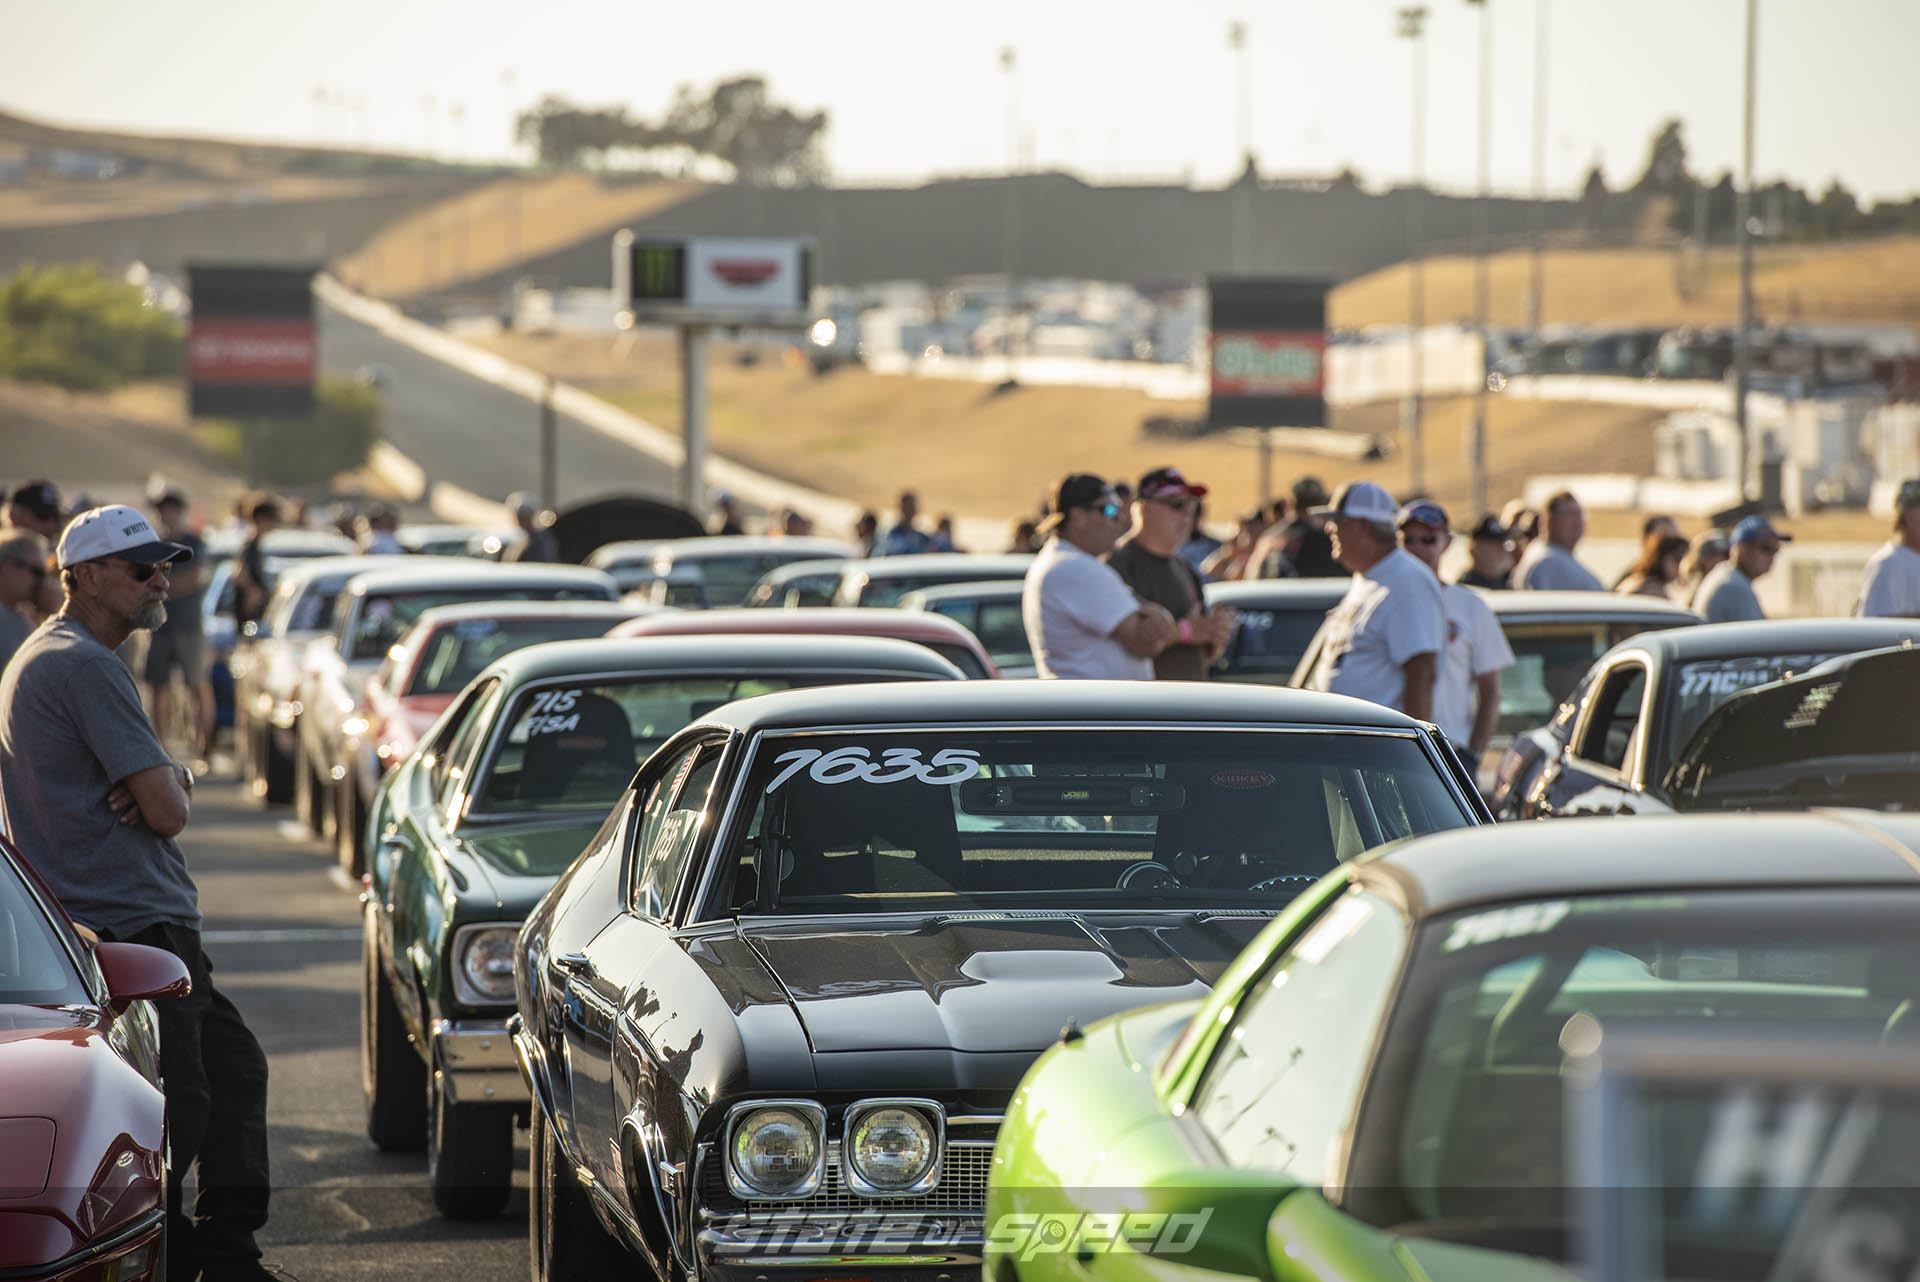 Lines of cars getting ready to race at the dragstrip